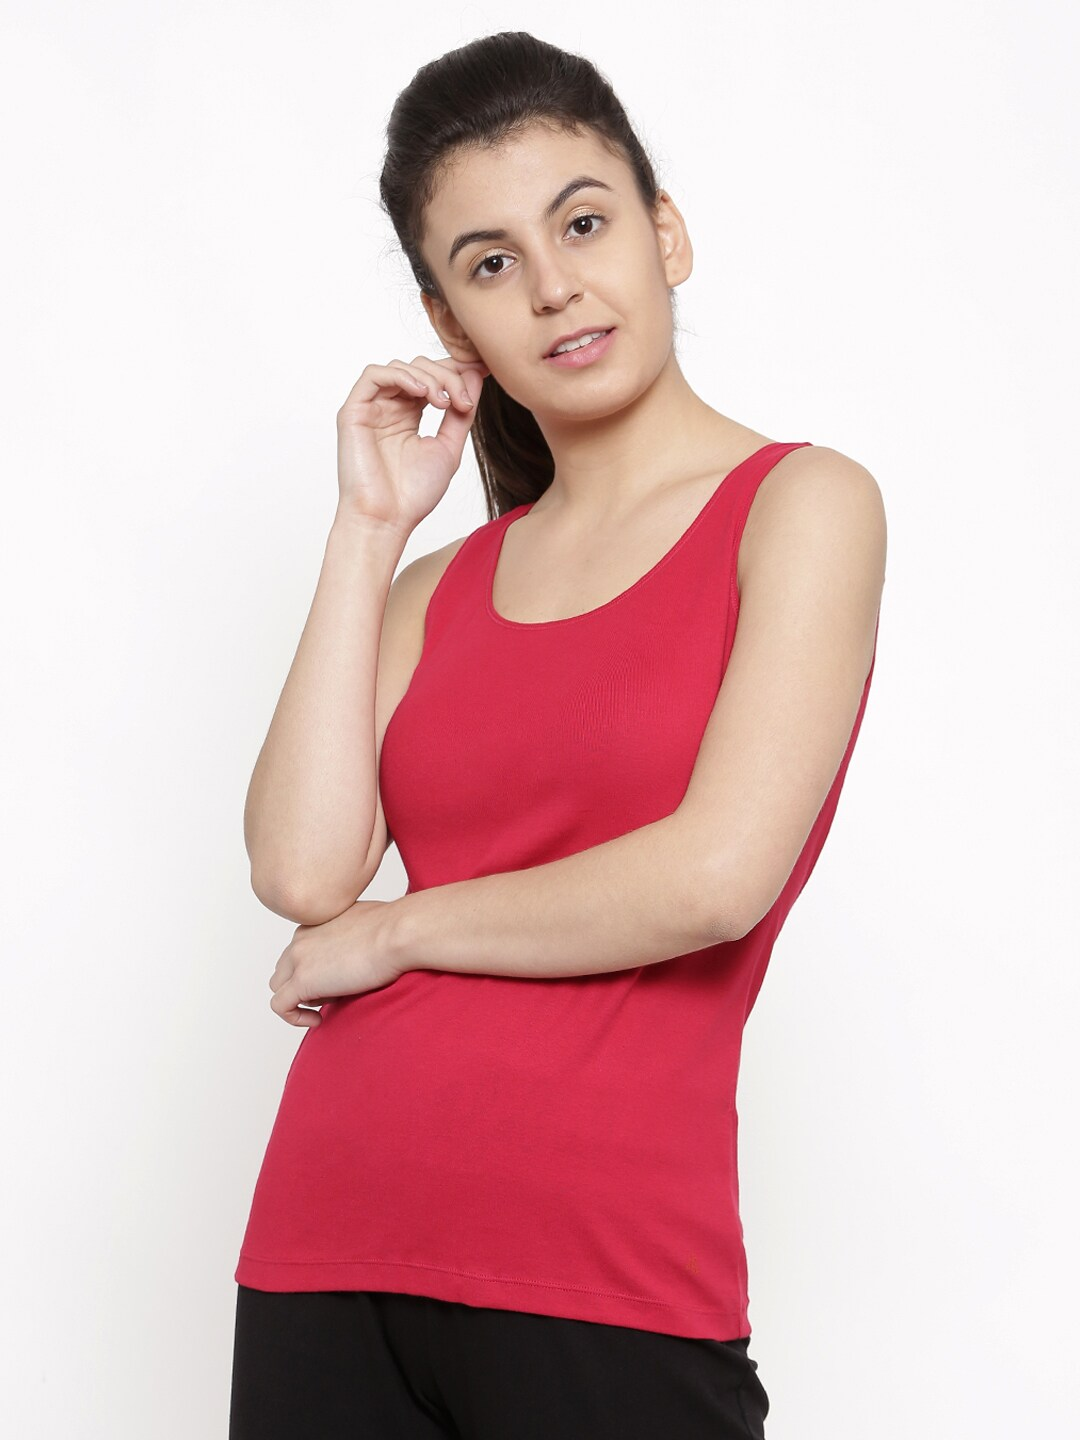 507b71a4eb6fc Jockey Tank Tops - Buy Jockey Tank Tops online in India